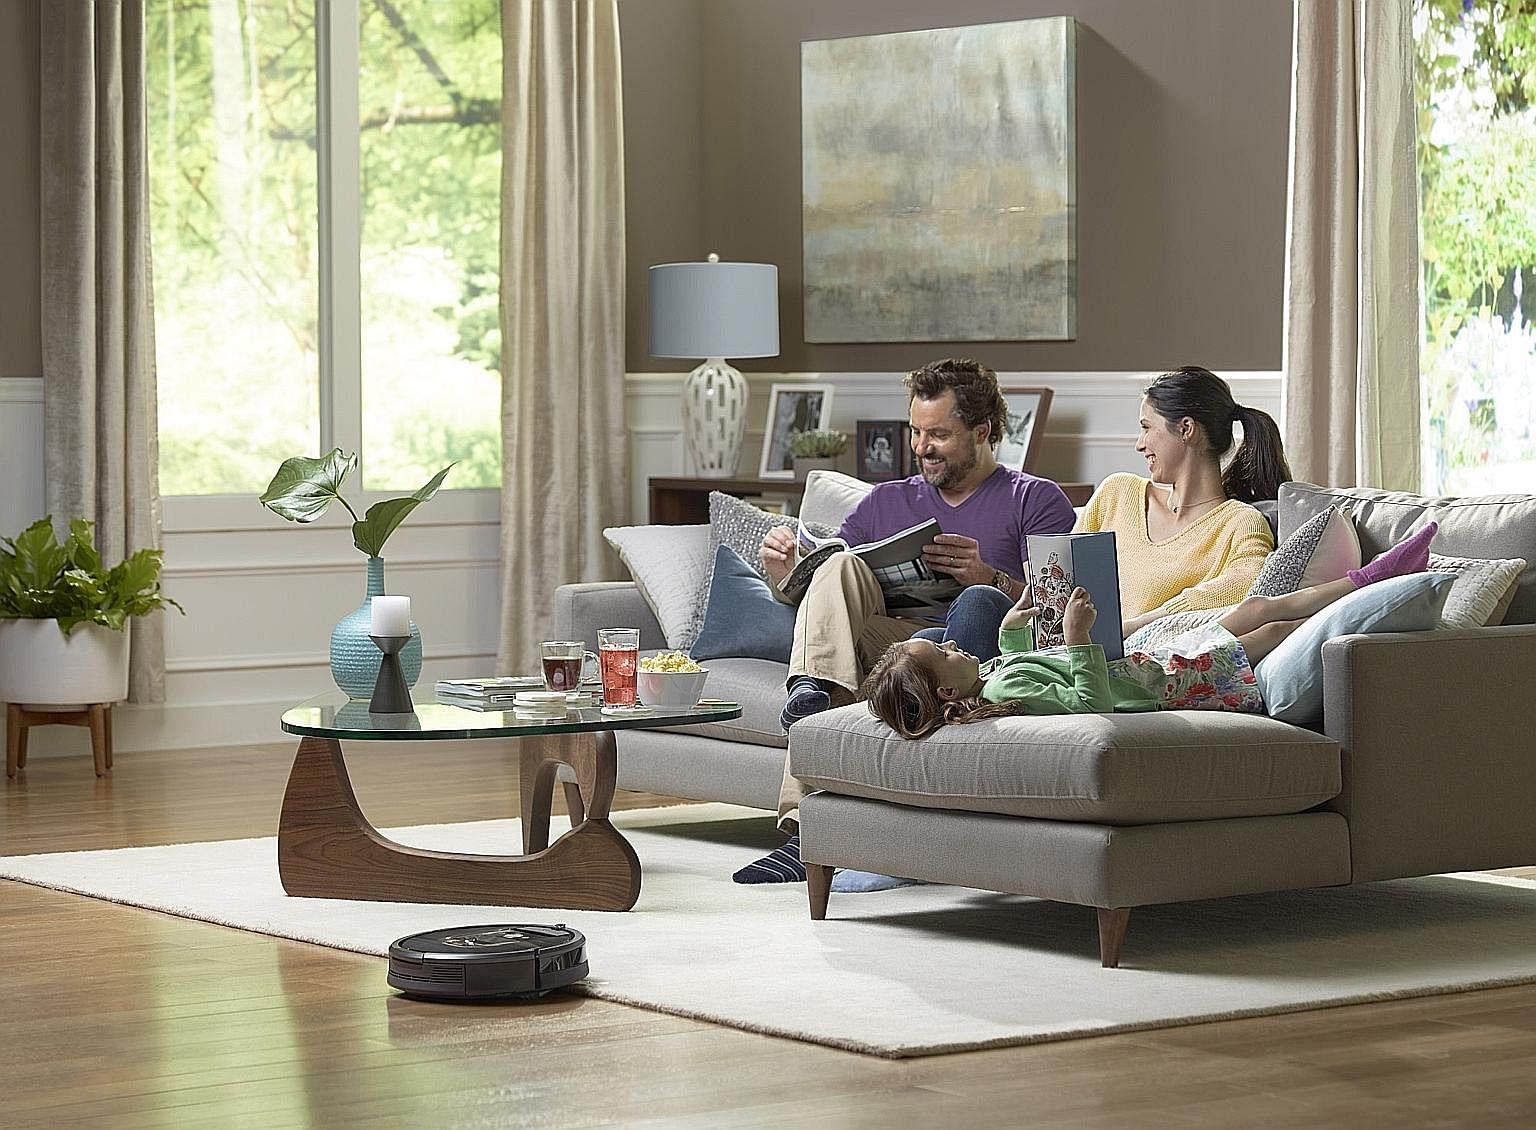 The Roomba 980 by iRobot is pricey but its ease of use and ability to traverse various obstacles in the home makes it an excellent device.